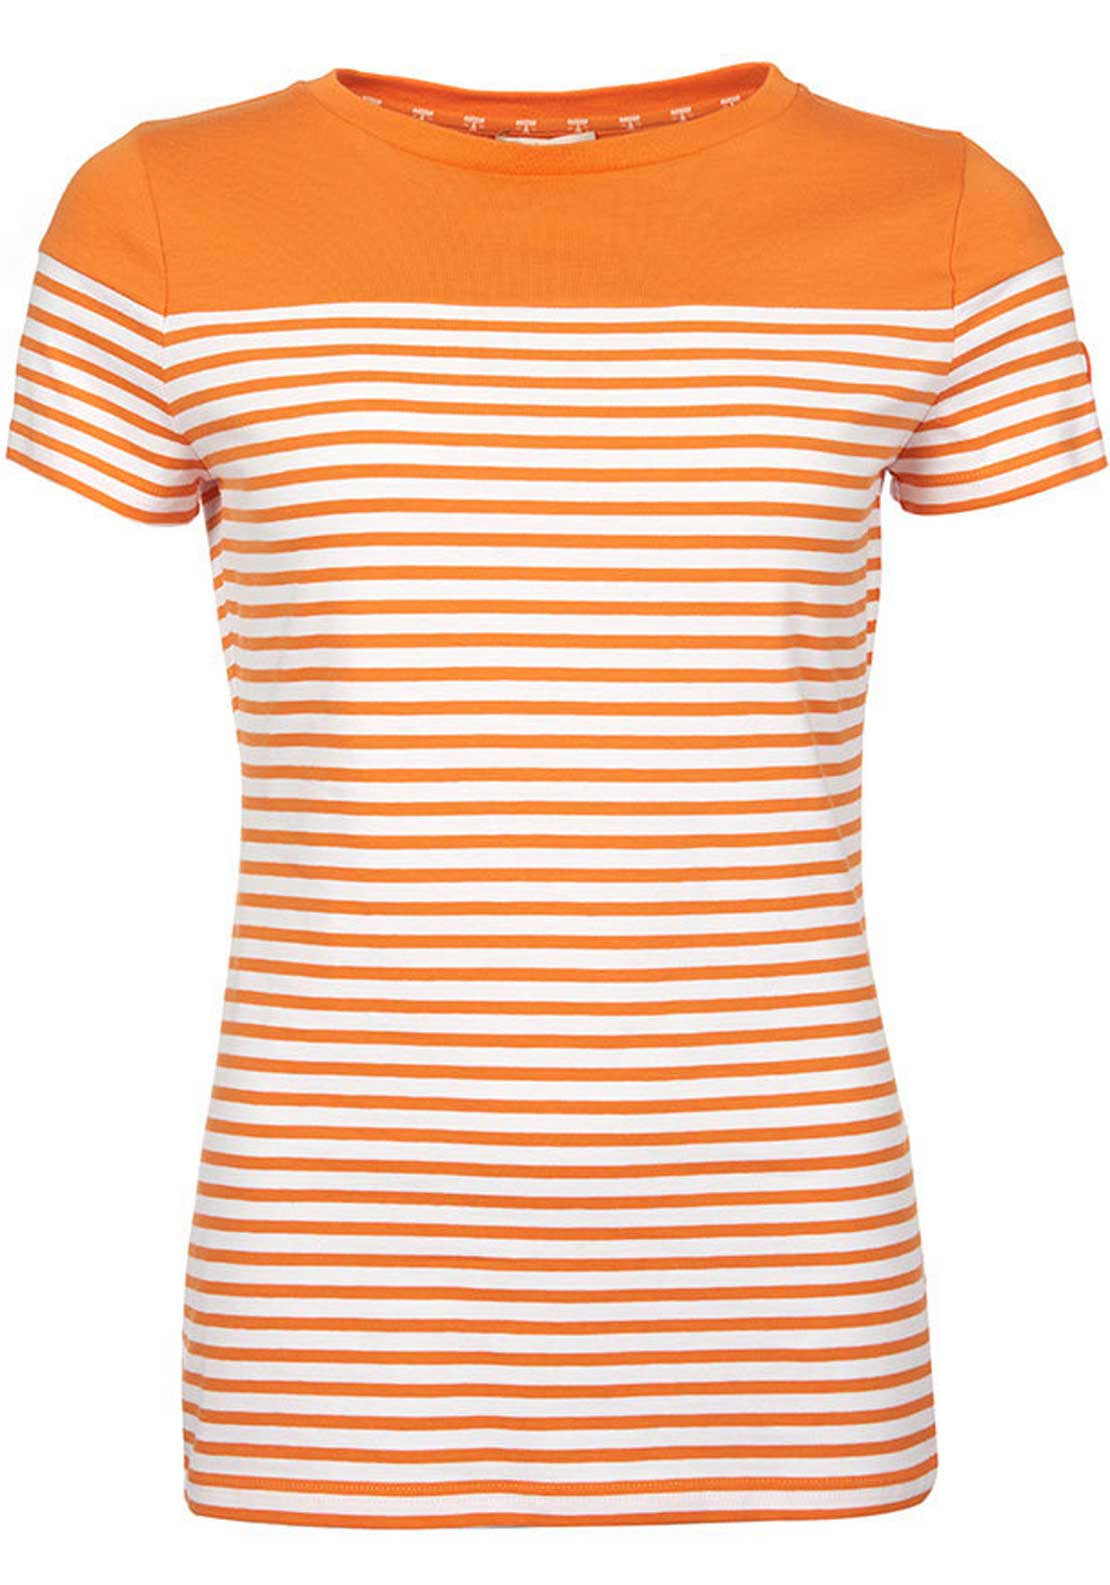 Barbour Womens Teesport Striped Short Sleeve T-Shirt, Orange and White